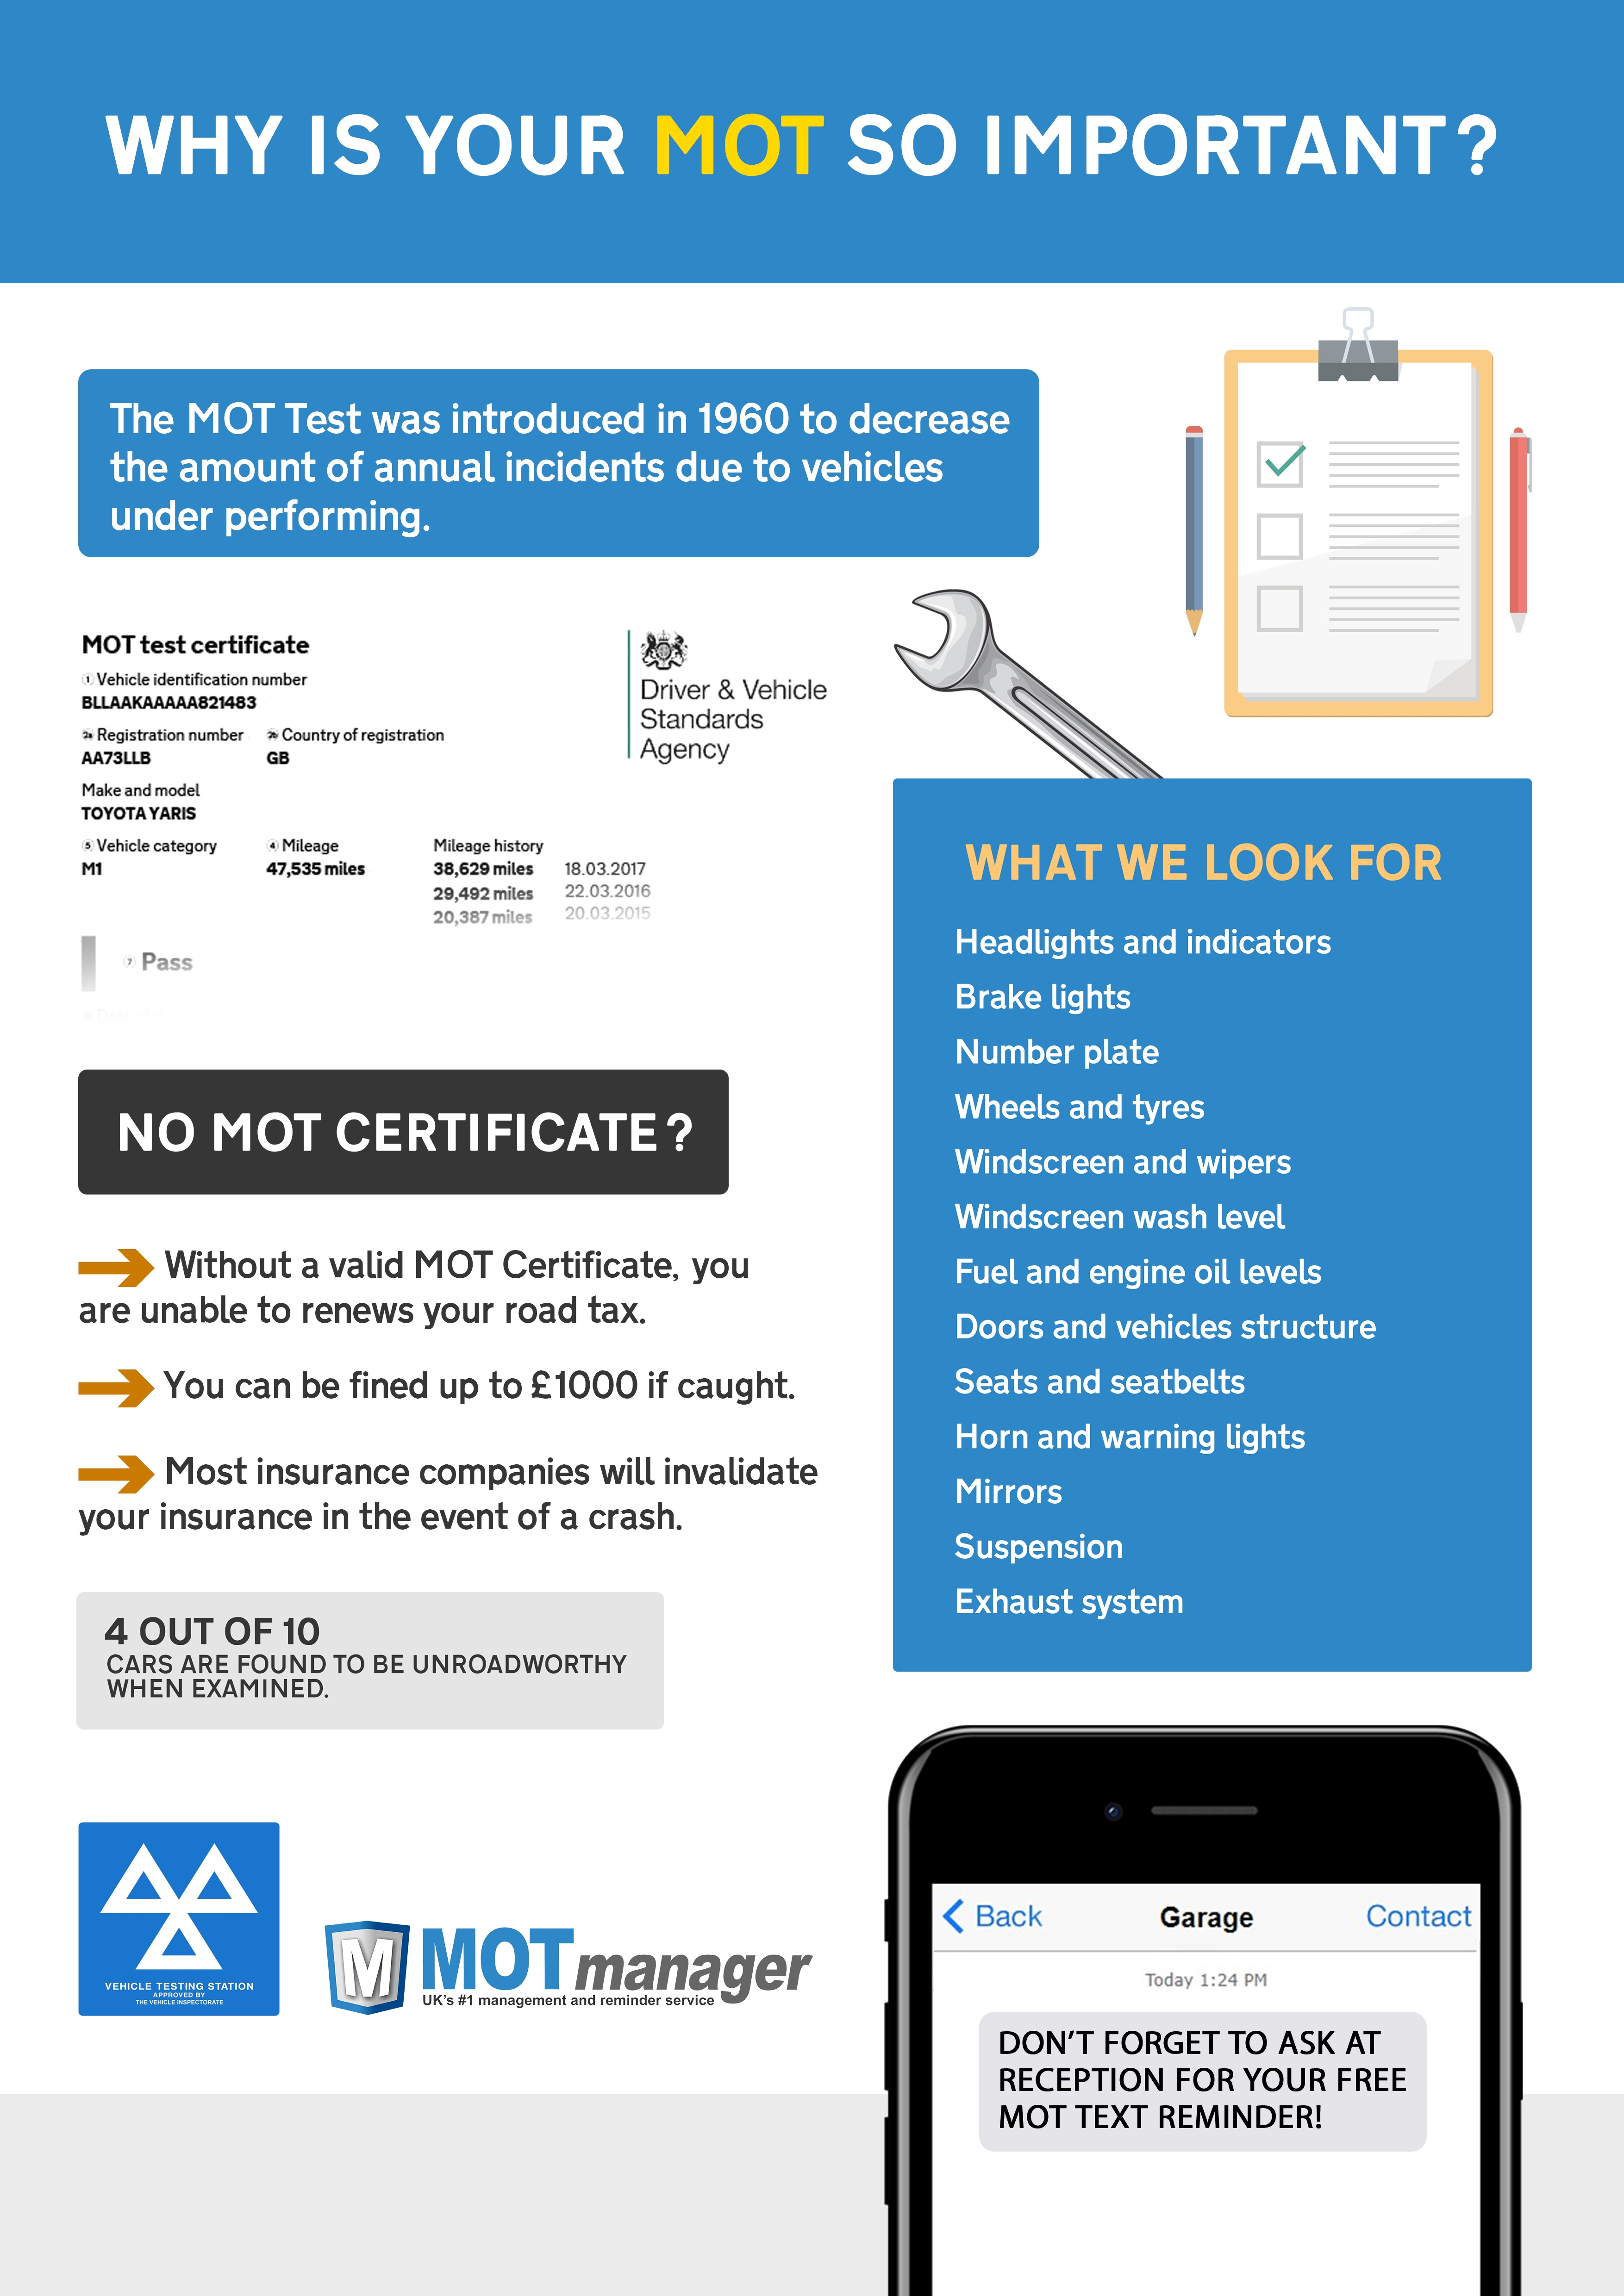 Why is your MOT important?